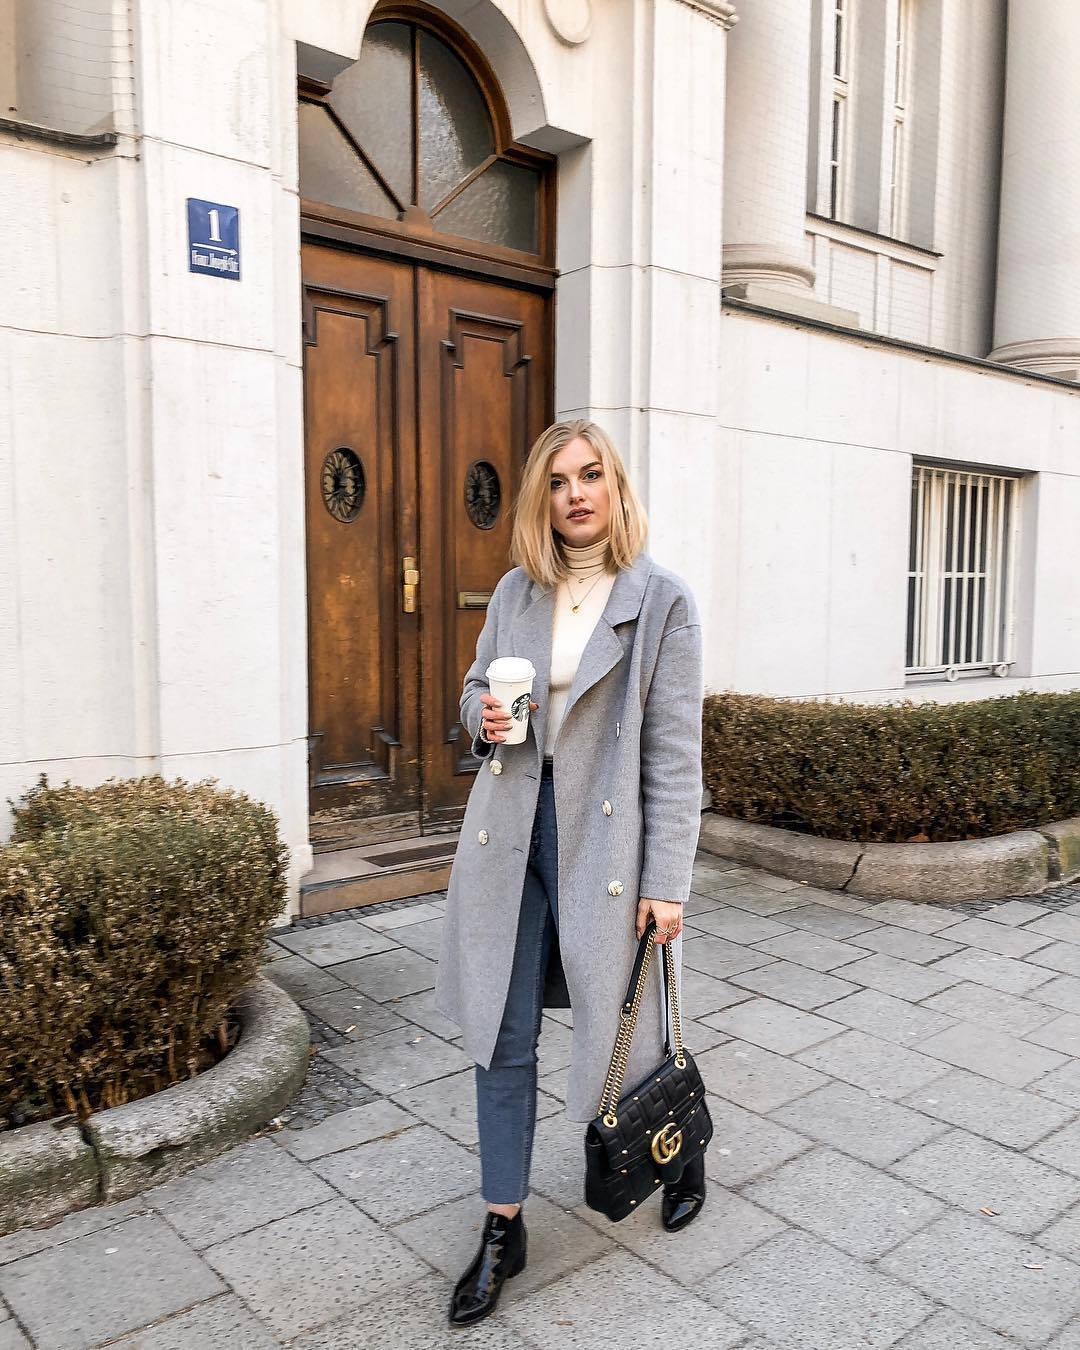 bag gucci bag black bag ankle boots patent boots high waisted jeans skinny jeans grey coat double breasted white turtleneck top